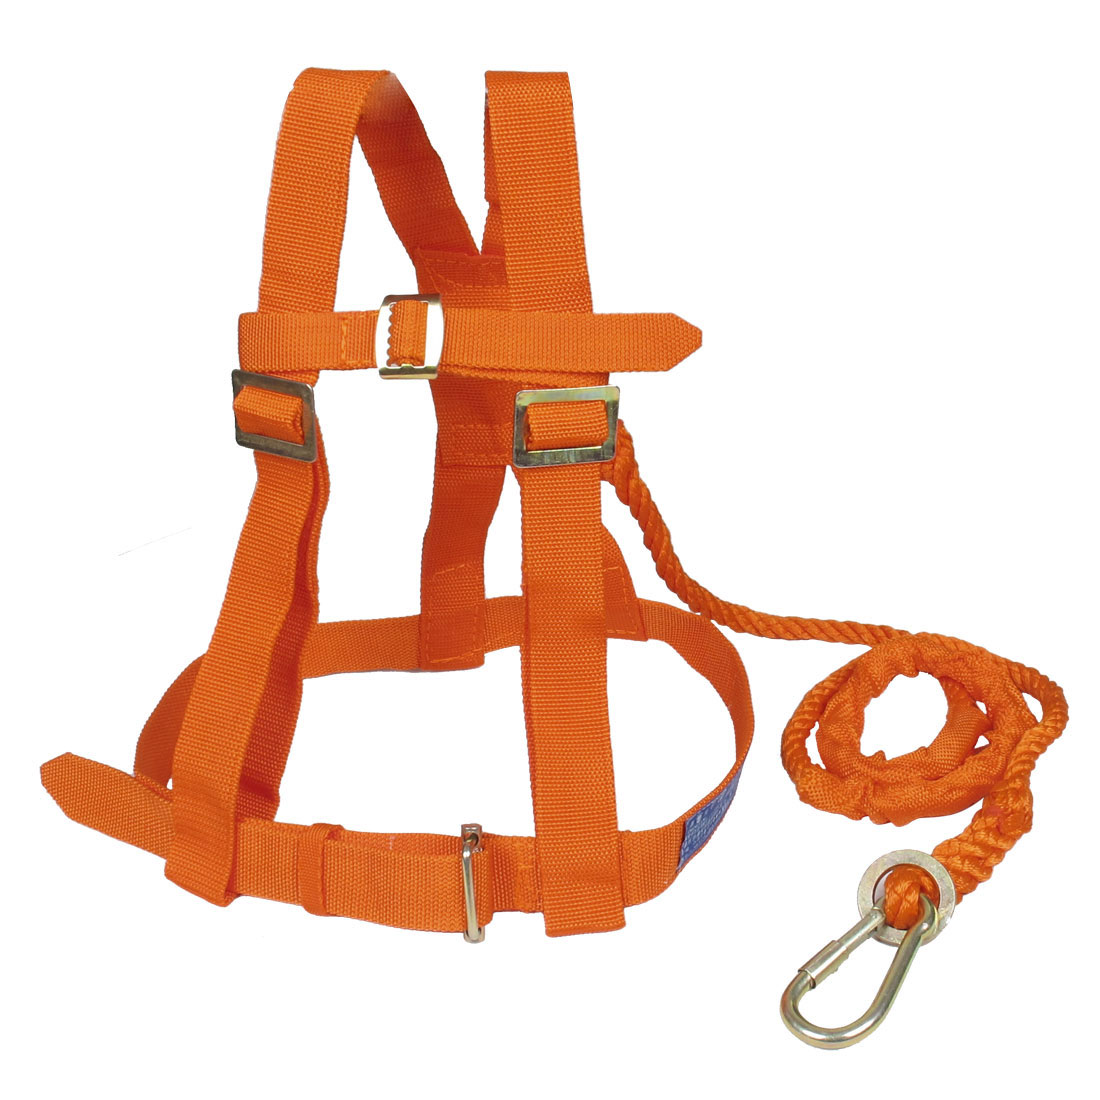 Adjustable Orange Straps Band Metal Buckle Double Harness 1.6M 100Kg